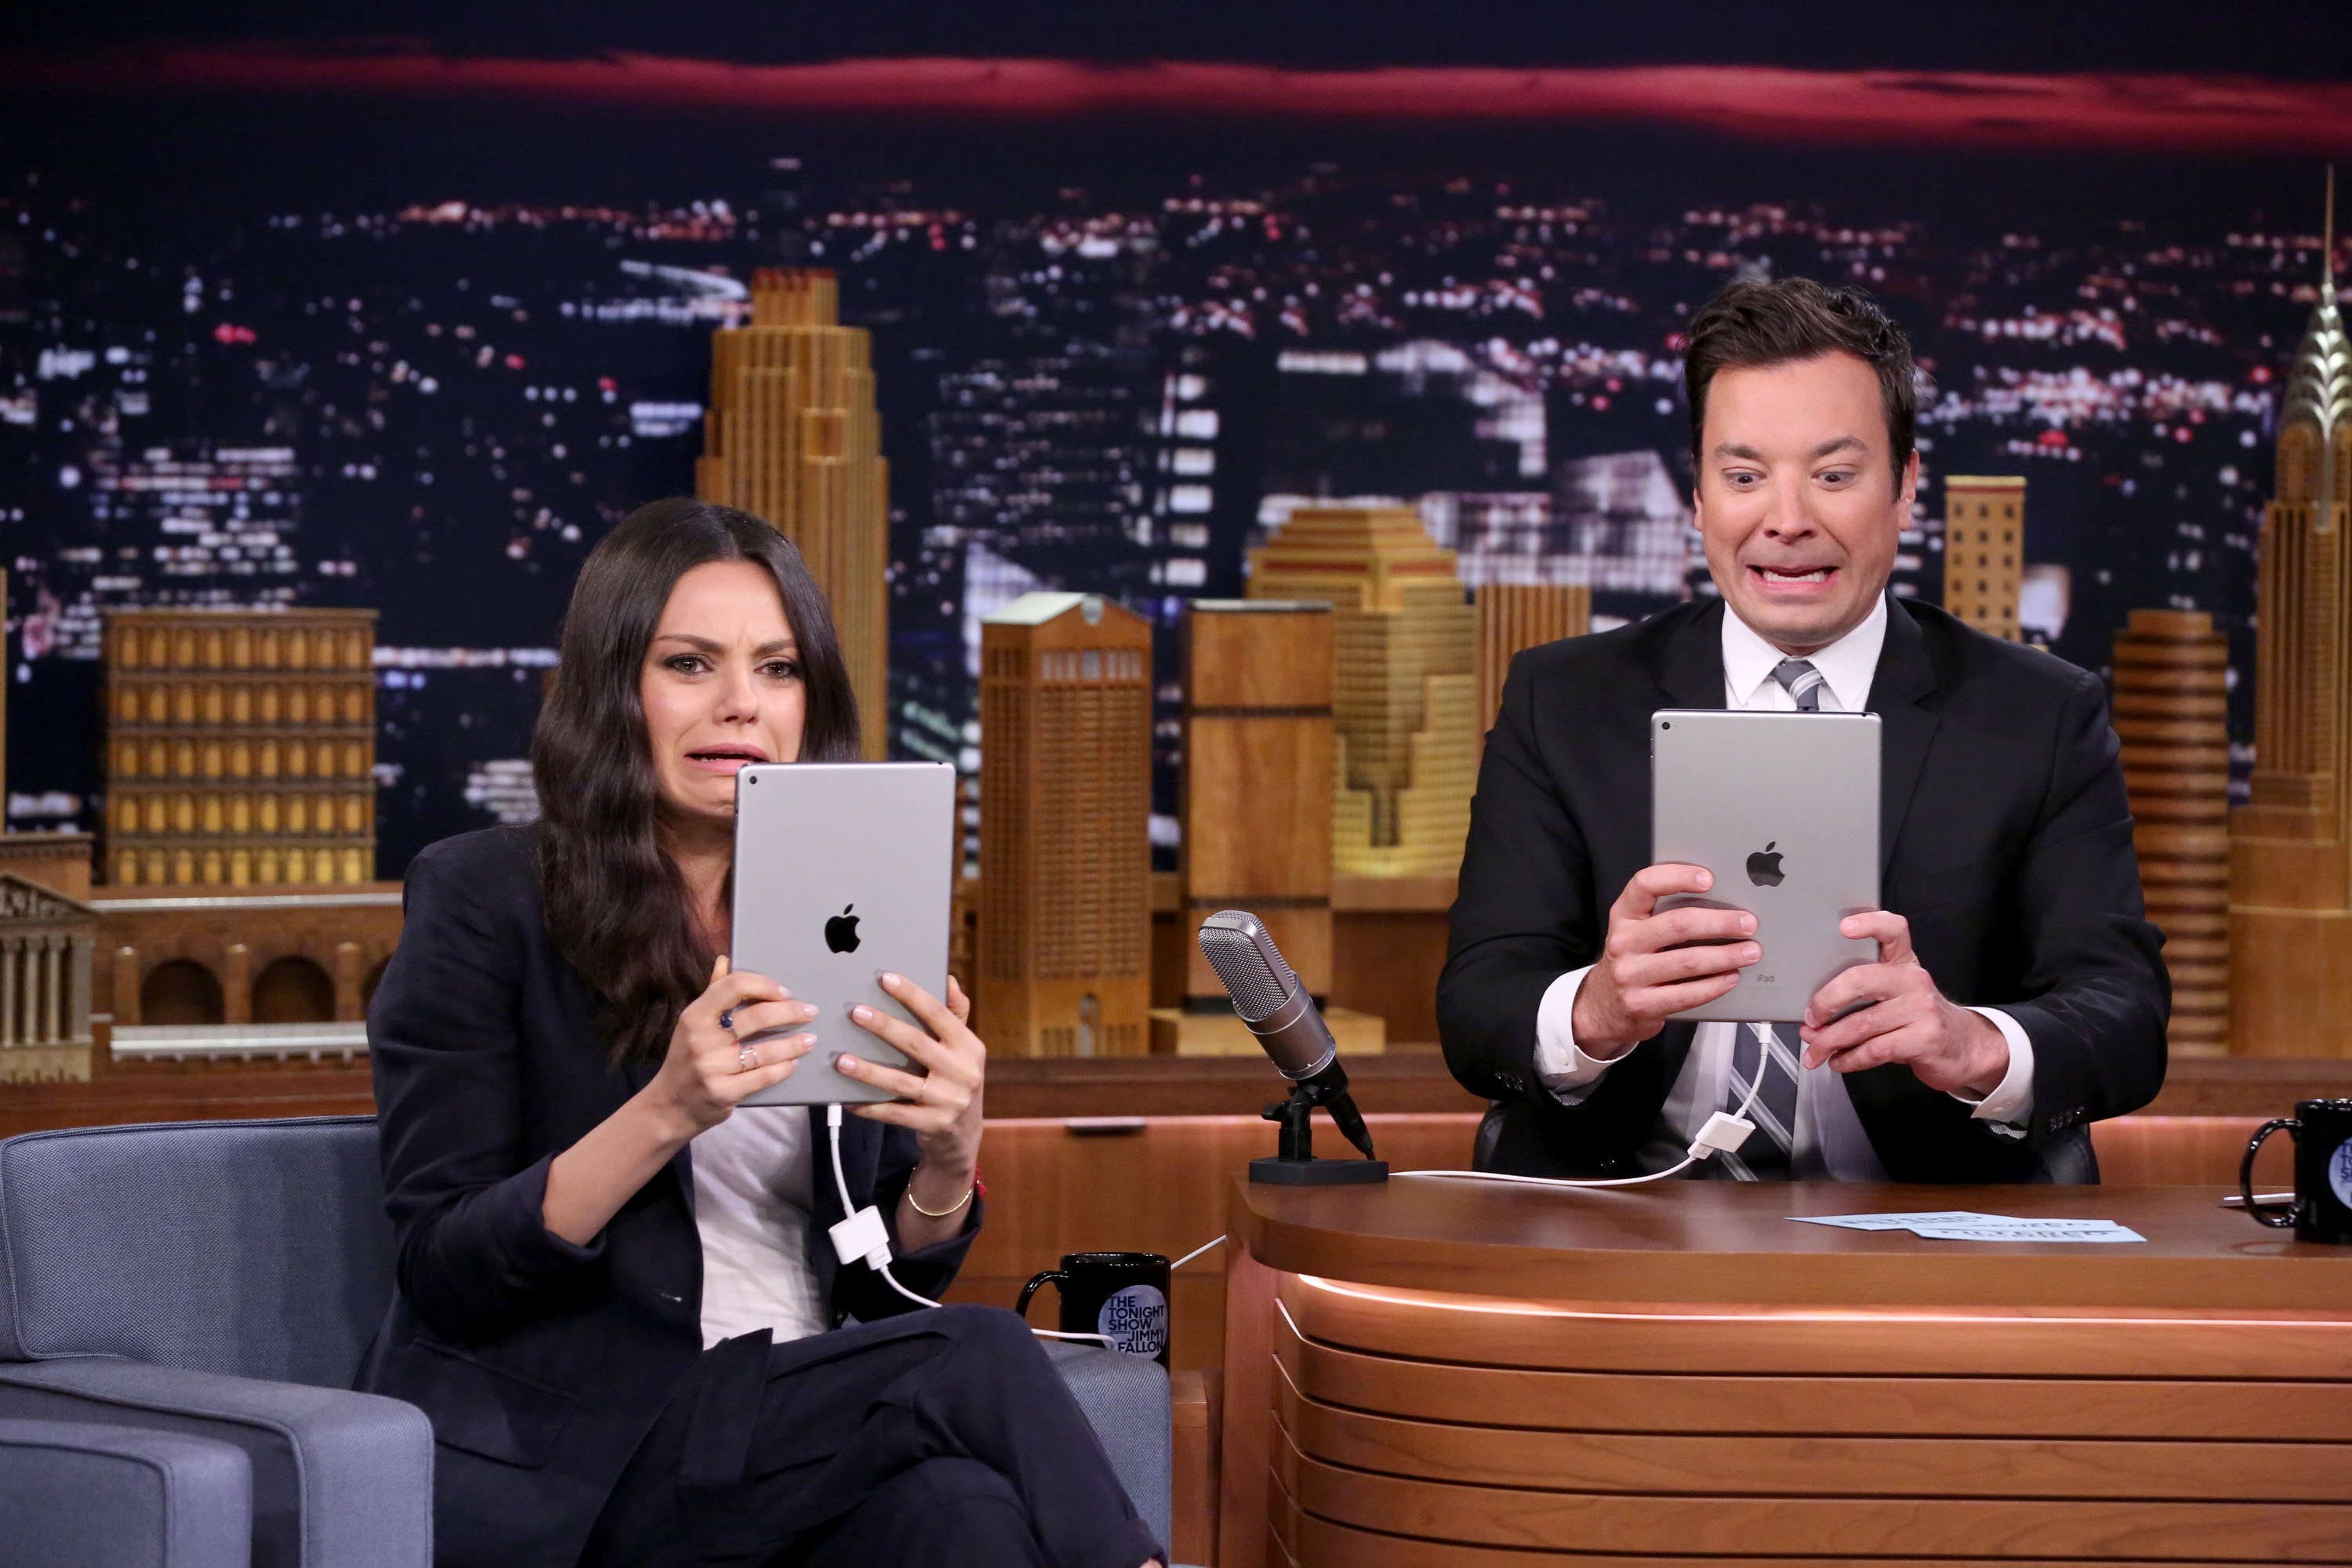 Mila Kunis and Jimmy Fallon crack themselves (and us) up while playing with Photo Booth filters